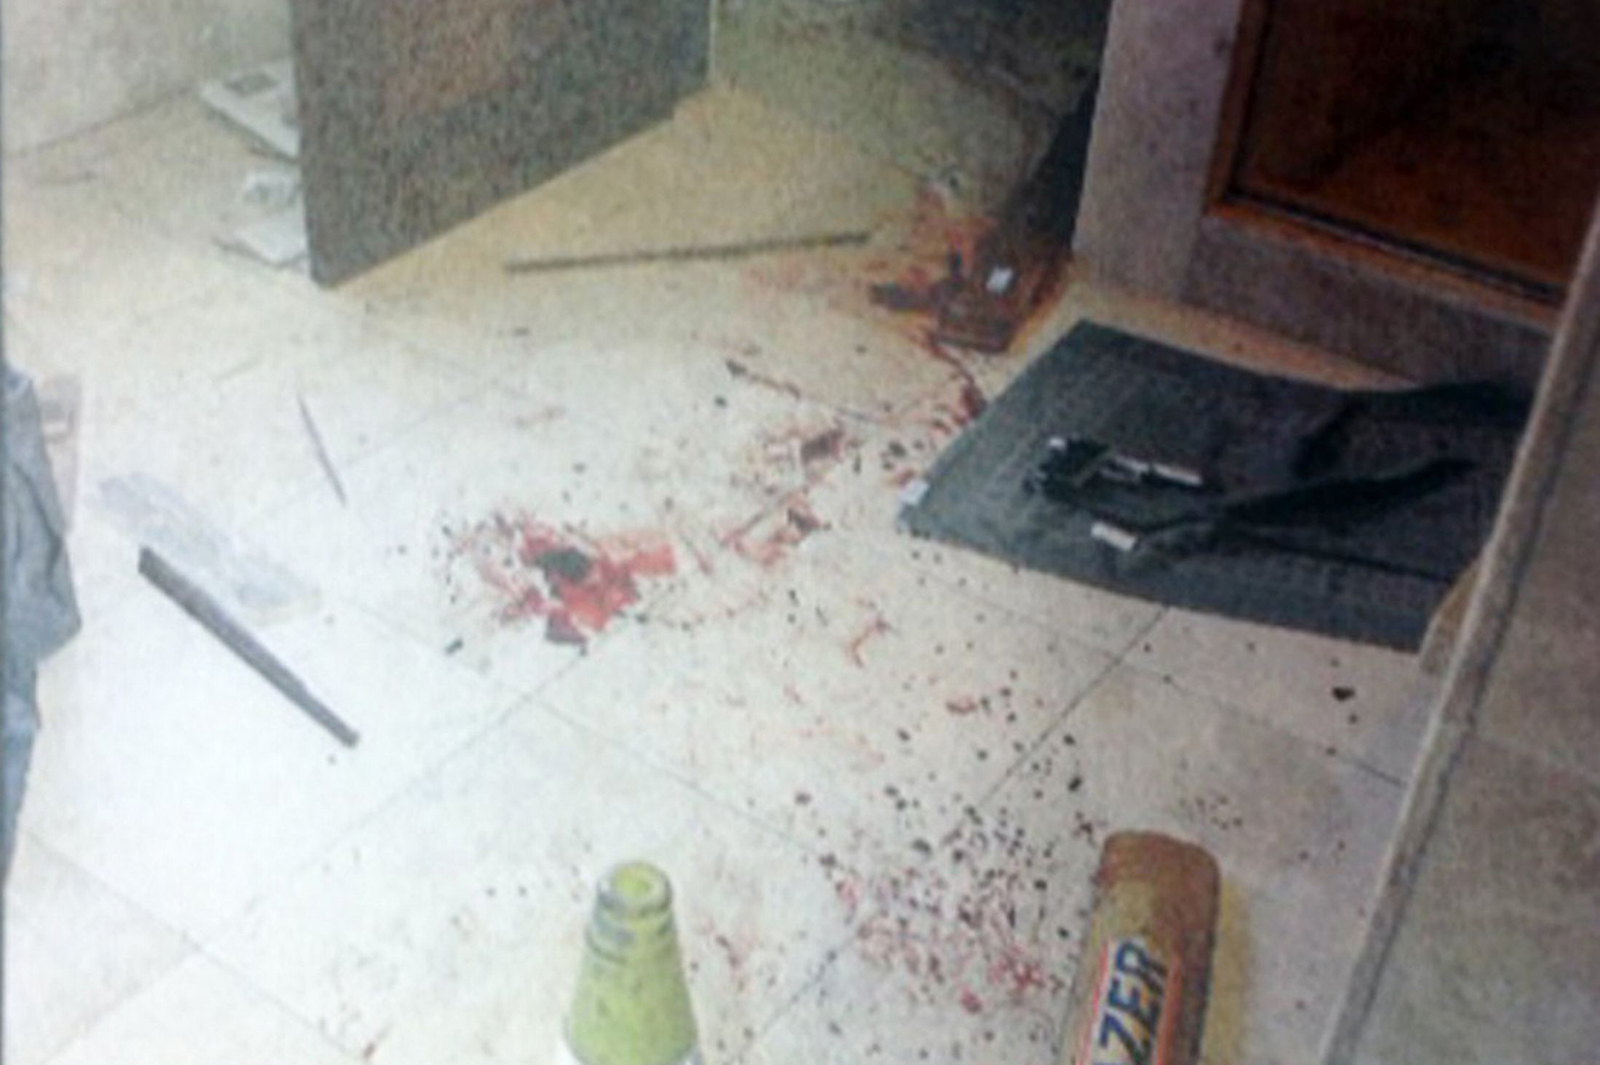 Oscar Pistorius Inside Bathroom Blade Runner Shot Girlfriend Reeva Steenk moreover Pictures Show Bloody Scene Oscar Pistorius Fatally Shot Girlfriend Article 1 in addition Shocking Photos Emerge Oscar Pistorious Crime Scene Graphic Images 2 likewise Steven Hayes Petit Home Invasion Killer Gives Chilling Interview furthermore Police Photographer Admits Bloodied Evidence Inside Oscar Pistoriuss Apartment Moved Officers Crucial Hours Fatal Shooting. on oscar pistorius crime scene evidence